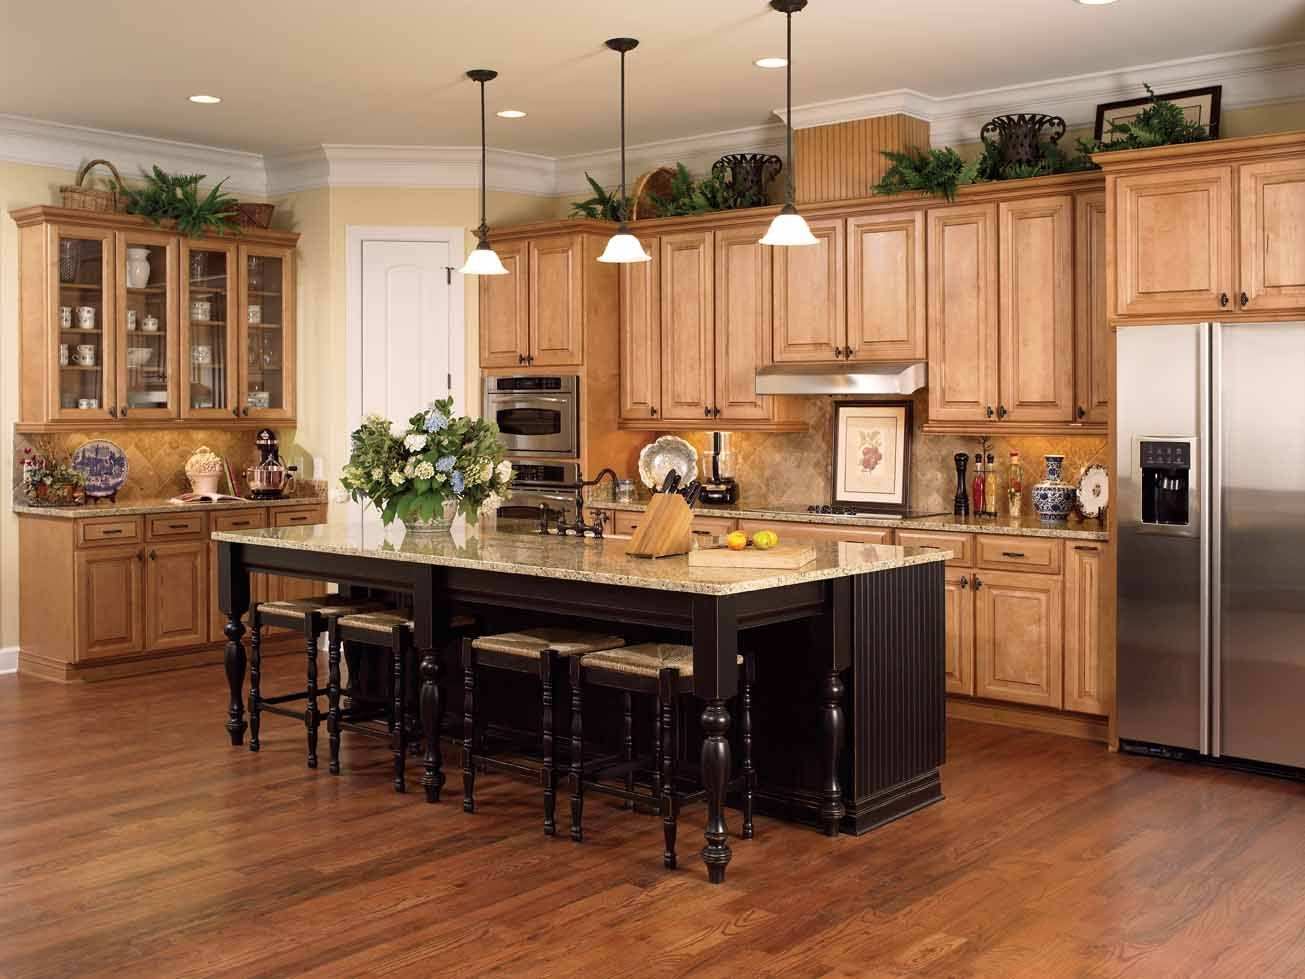 maple kitchen island honey colored oak cabinets with dark wood floor and black island design kitchen renovation 669